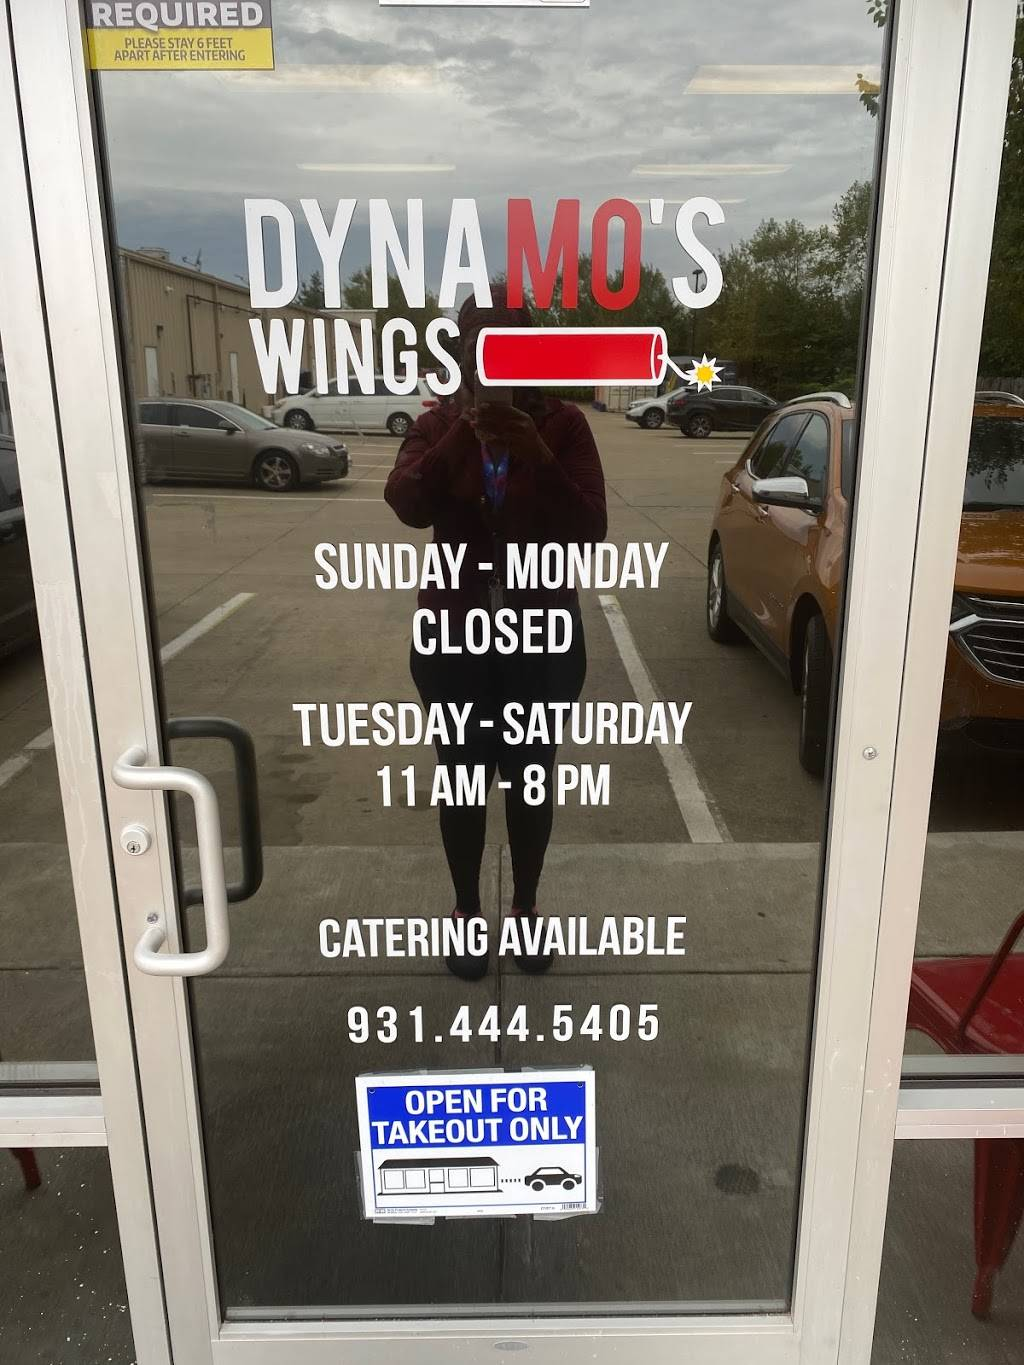 Dynamo's Wings | restaurant | 915 Tiny Town Rd suite c, Clarksville, TN 37042, USA | 9314445405 OR +1 931-444-5405